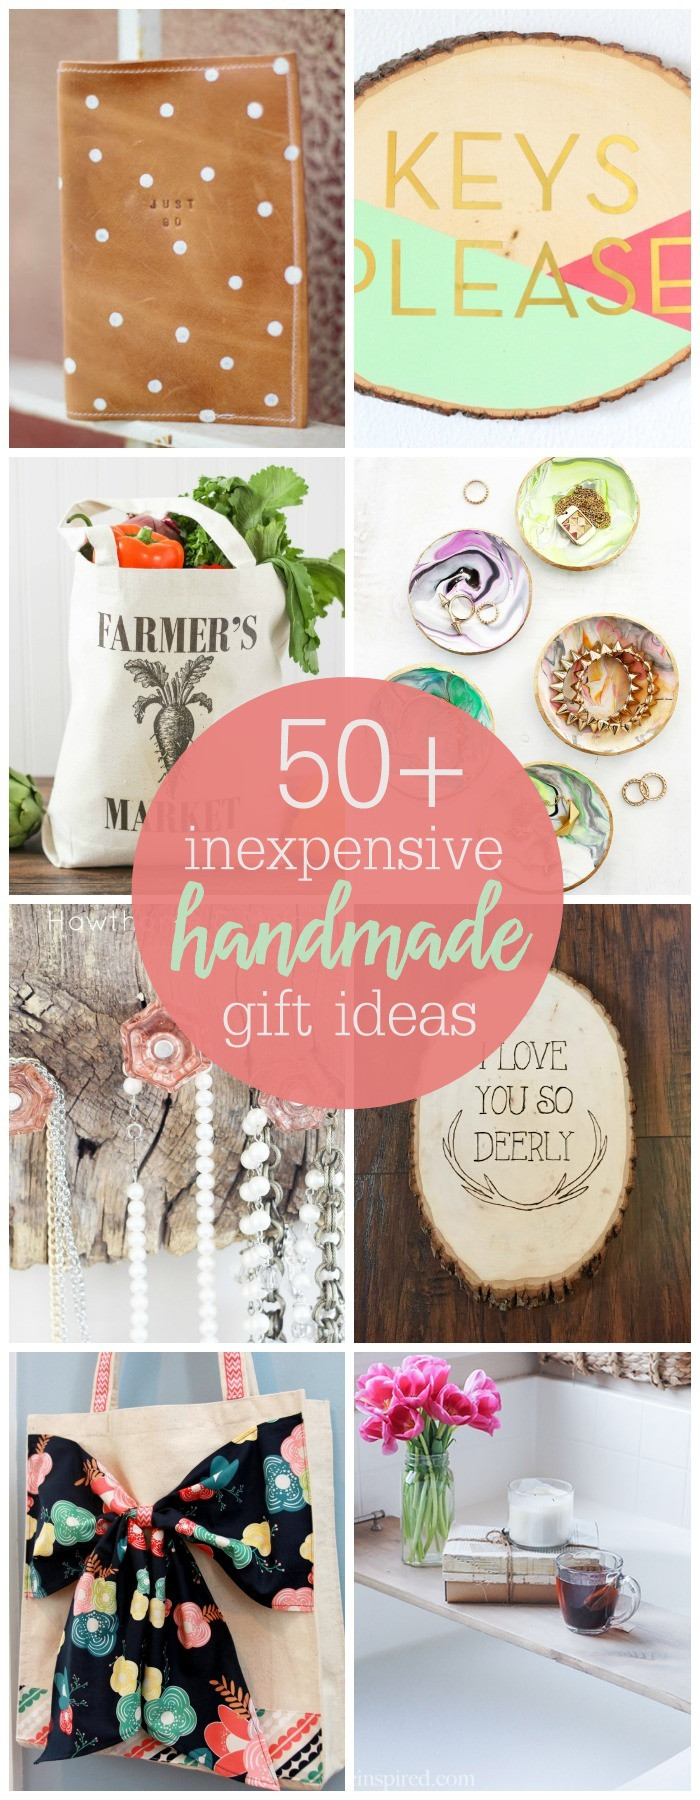 Best ideas about DIY Gifts Ideas For Friends . Save or Pin Inexpensive Handmade Gift Ideas Now.